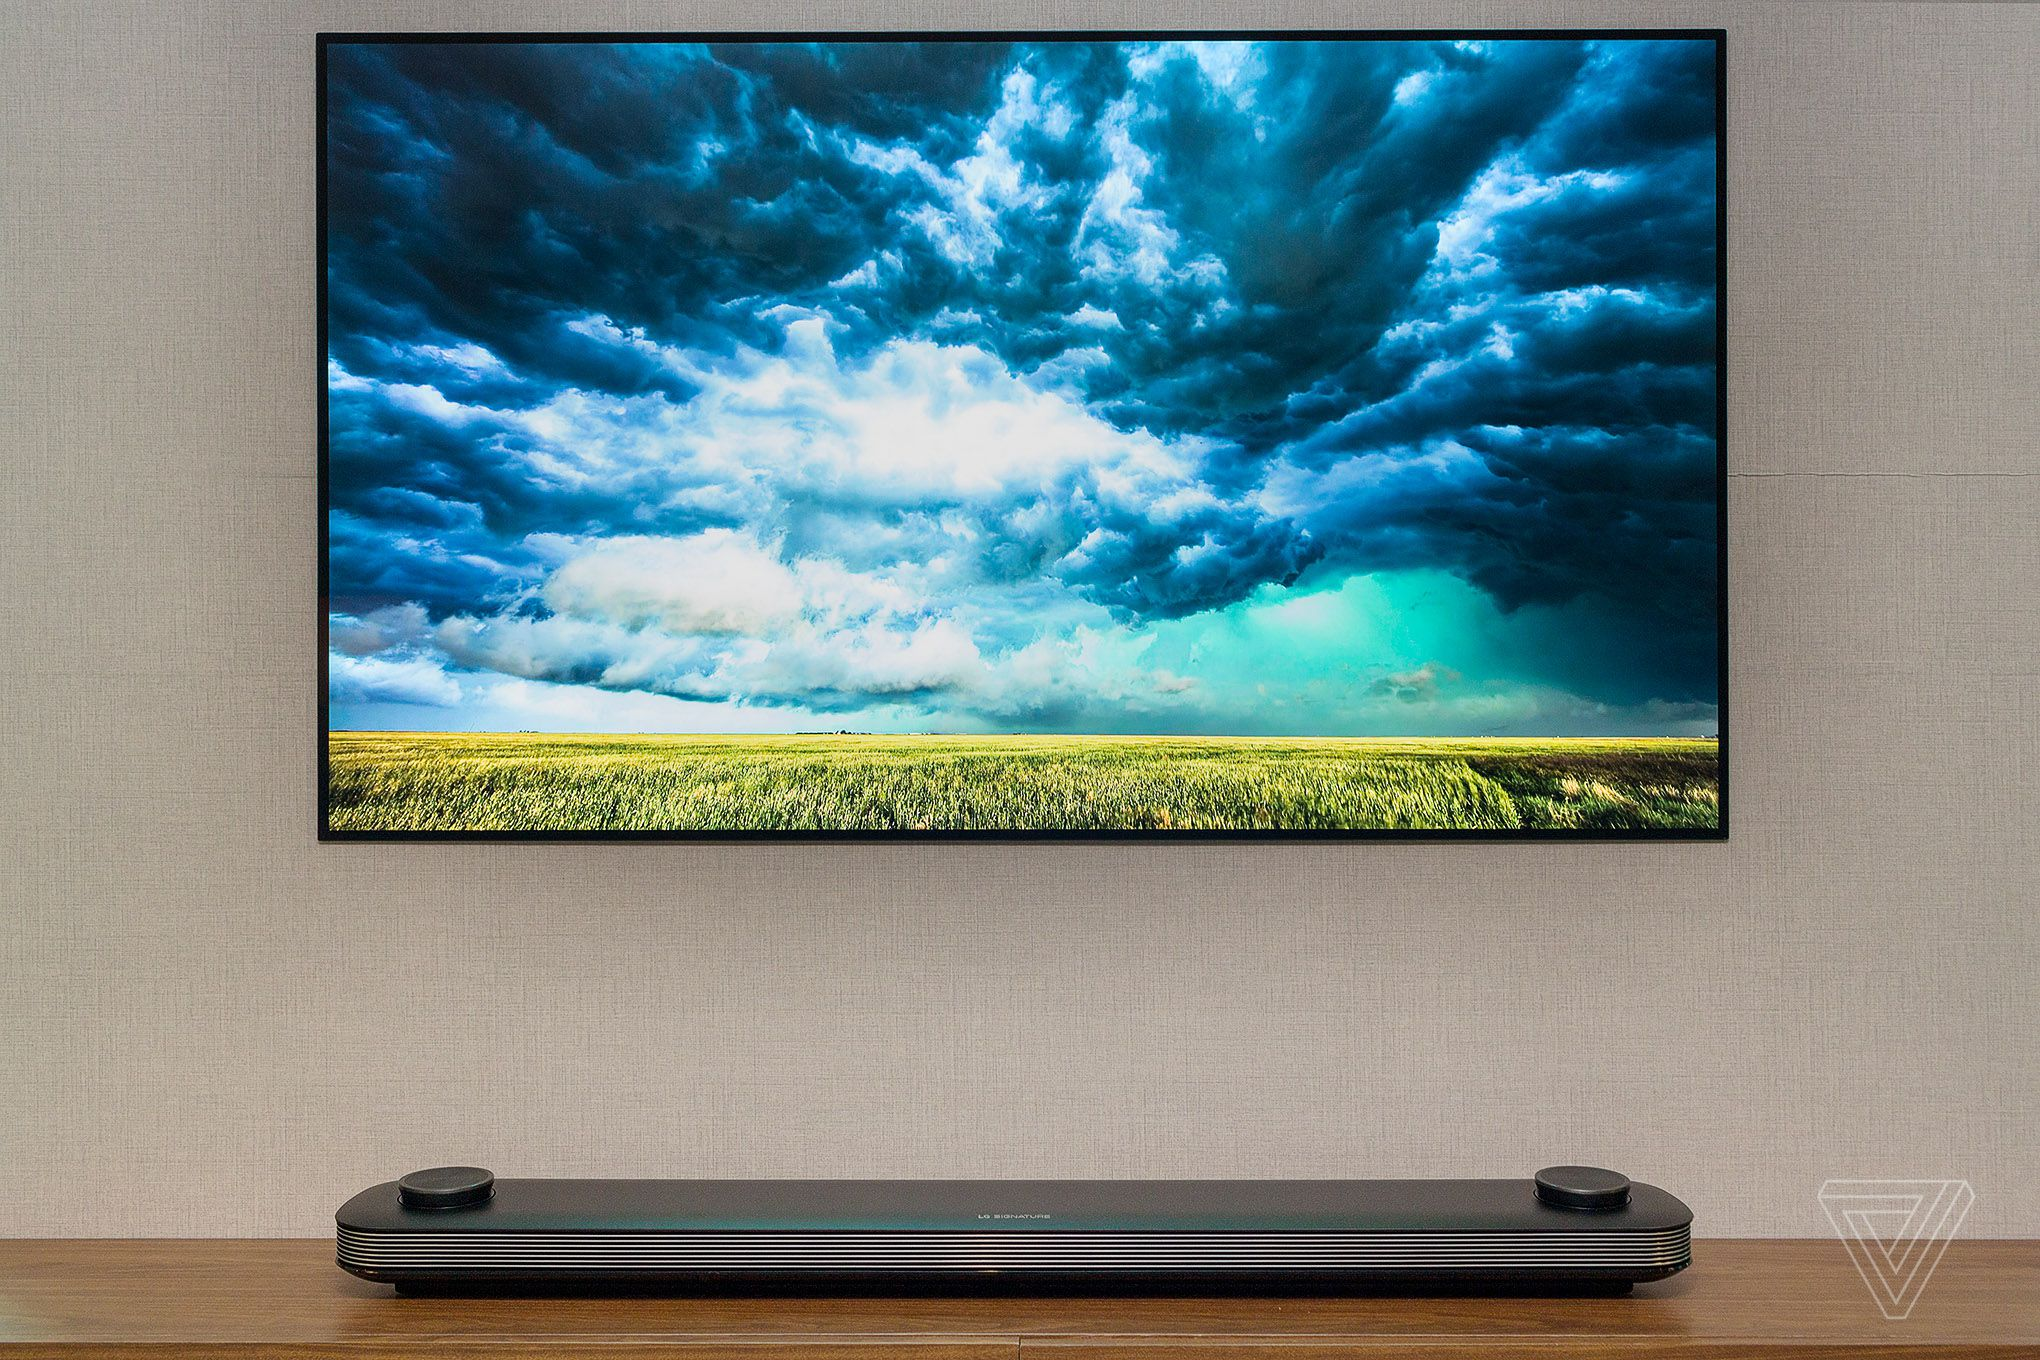 LG's excellent OLED TVs are getting steep discounts for Black Friday https://t.co/PoIXtQSQPa https://t.co/kaK9zhfkz0